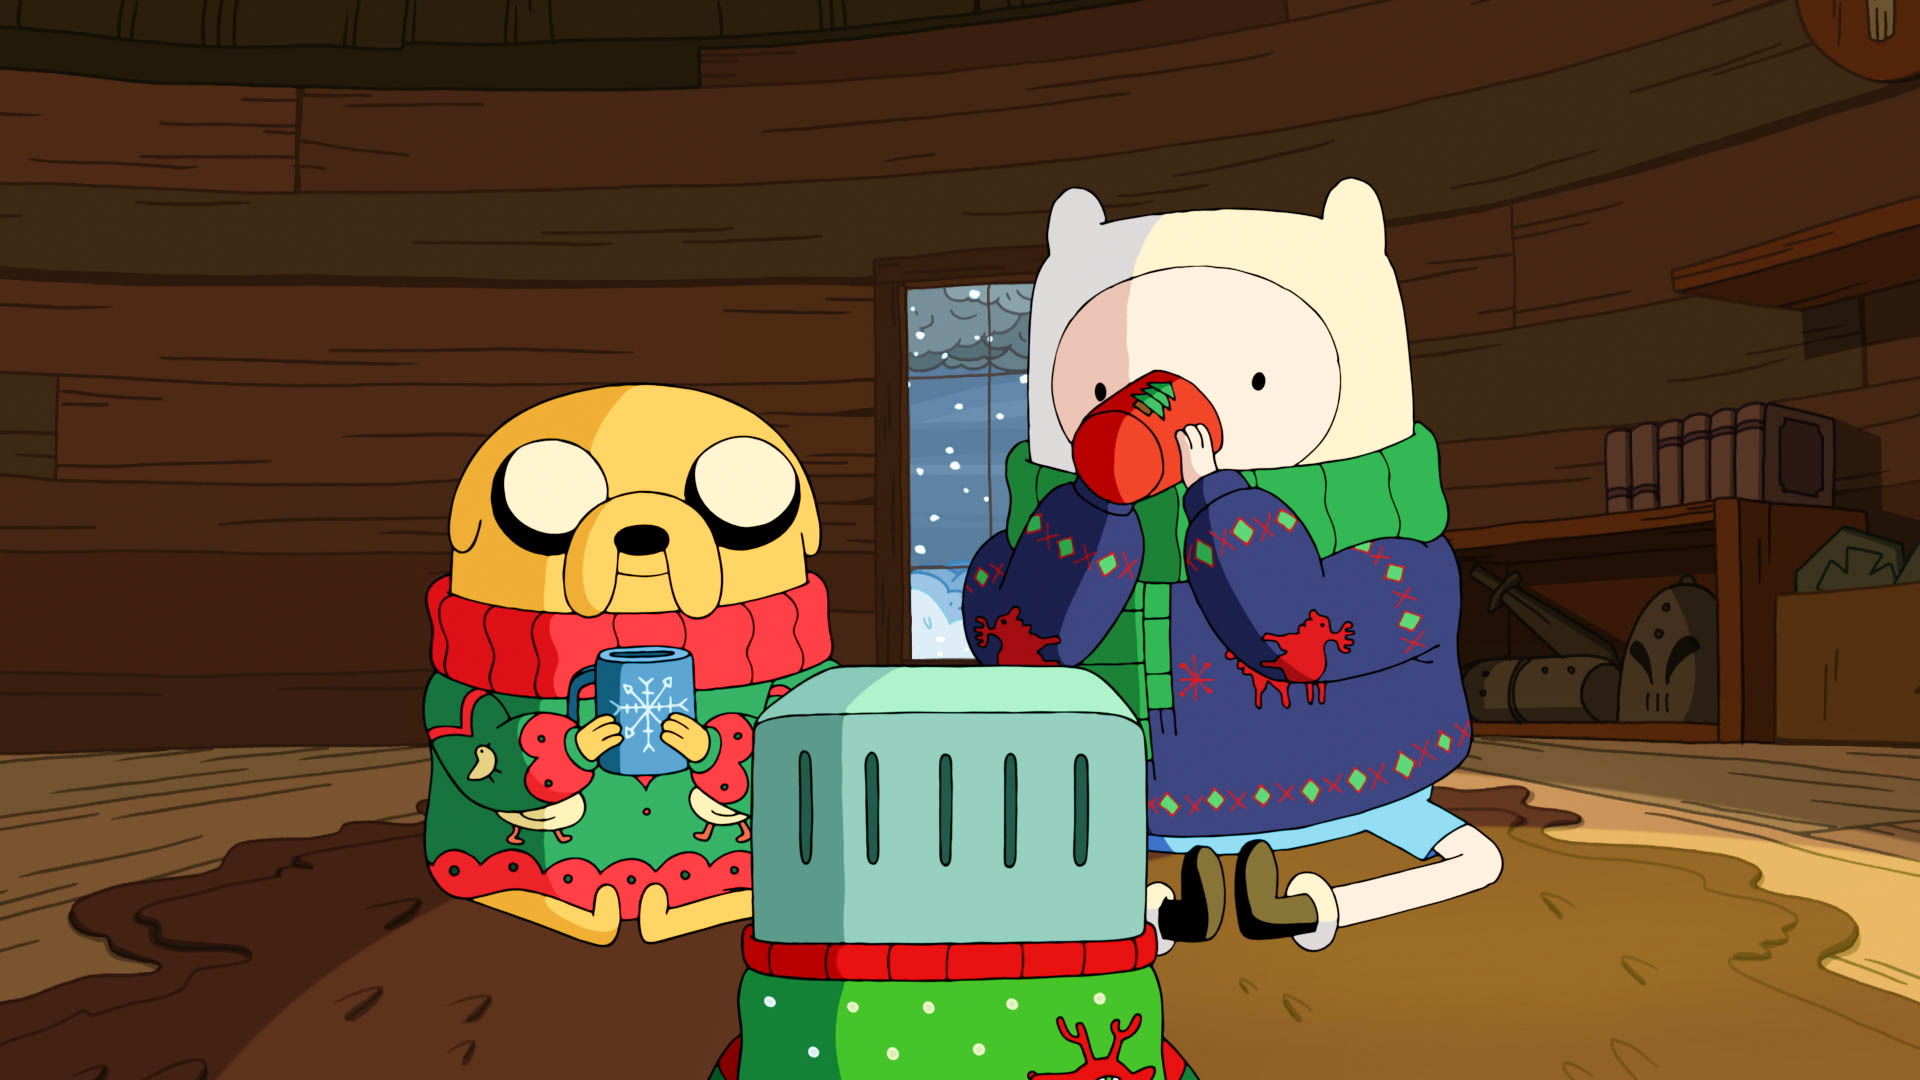 Adventure Time Tv Show Beautiful Wallpapers In High Definition - All HD Wallpapers